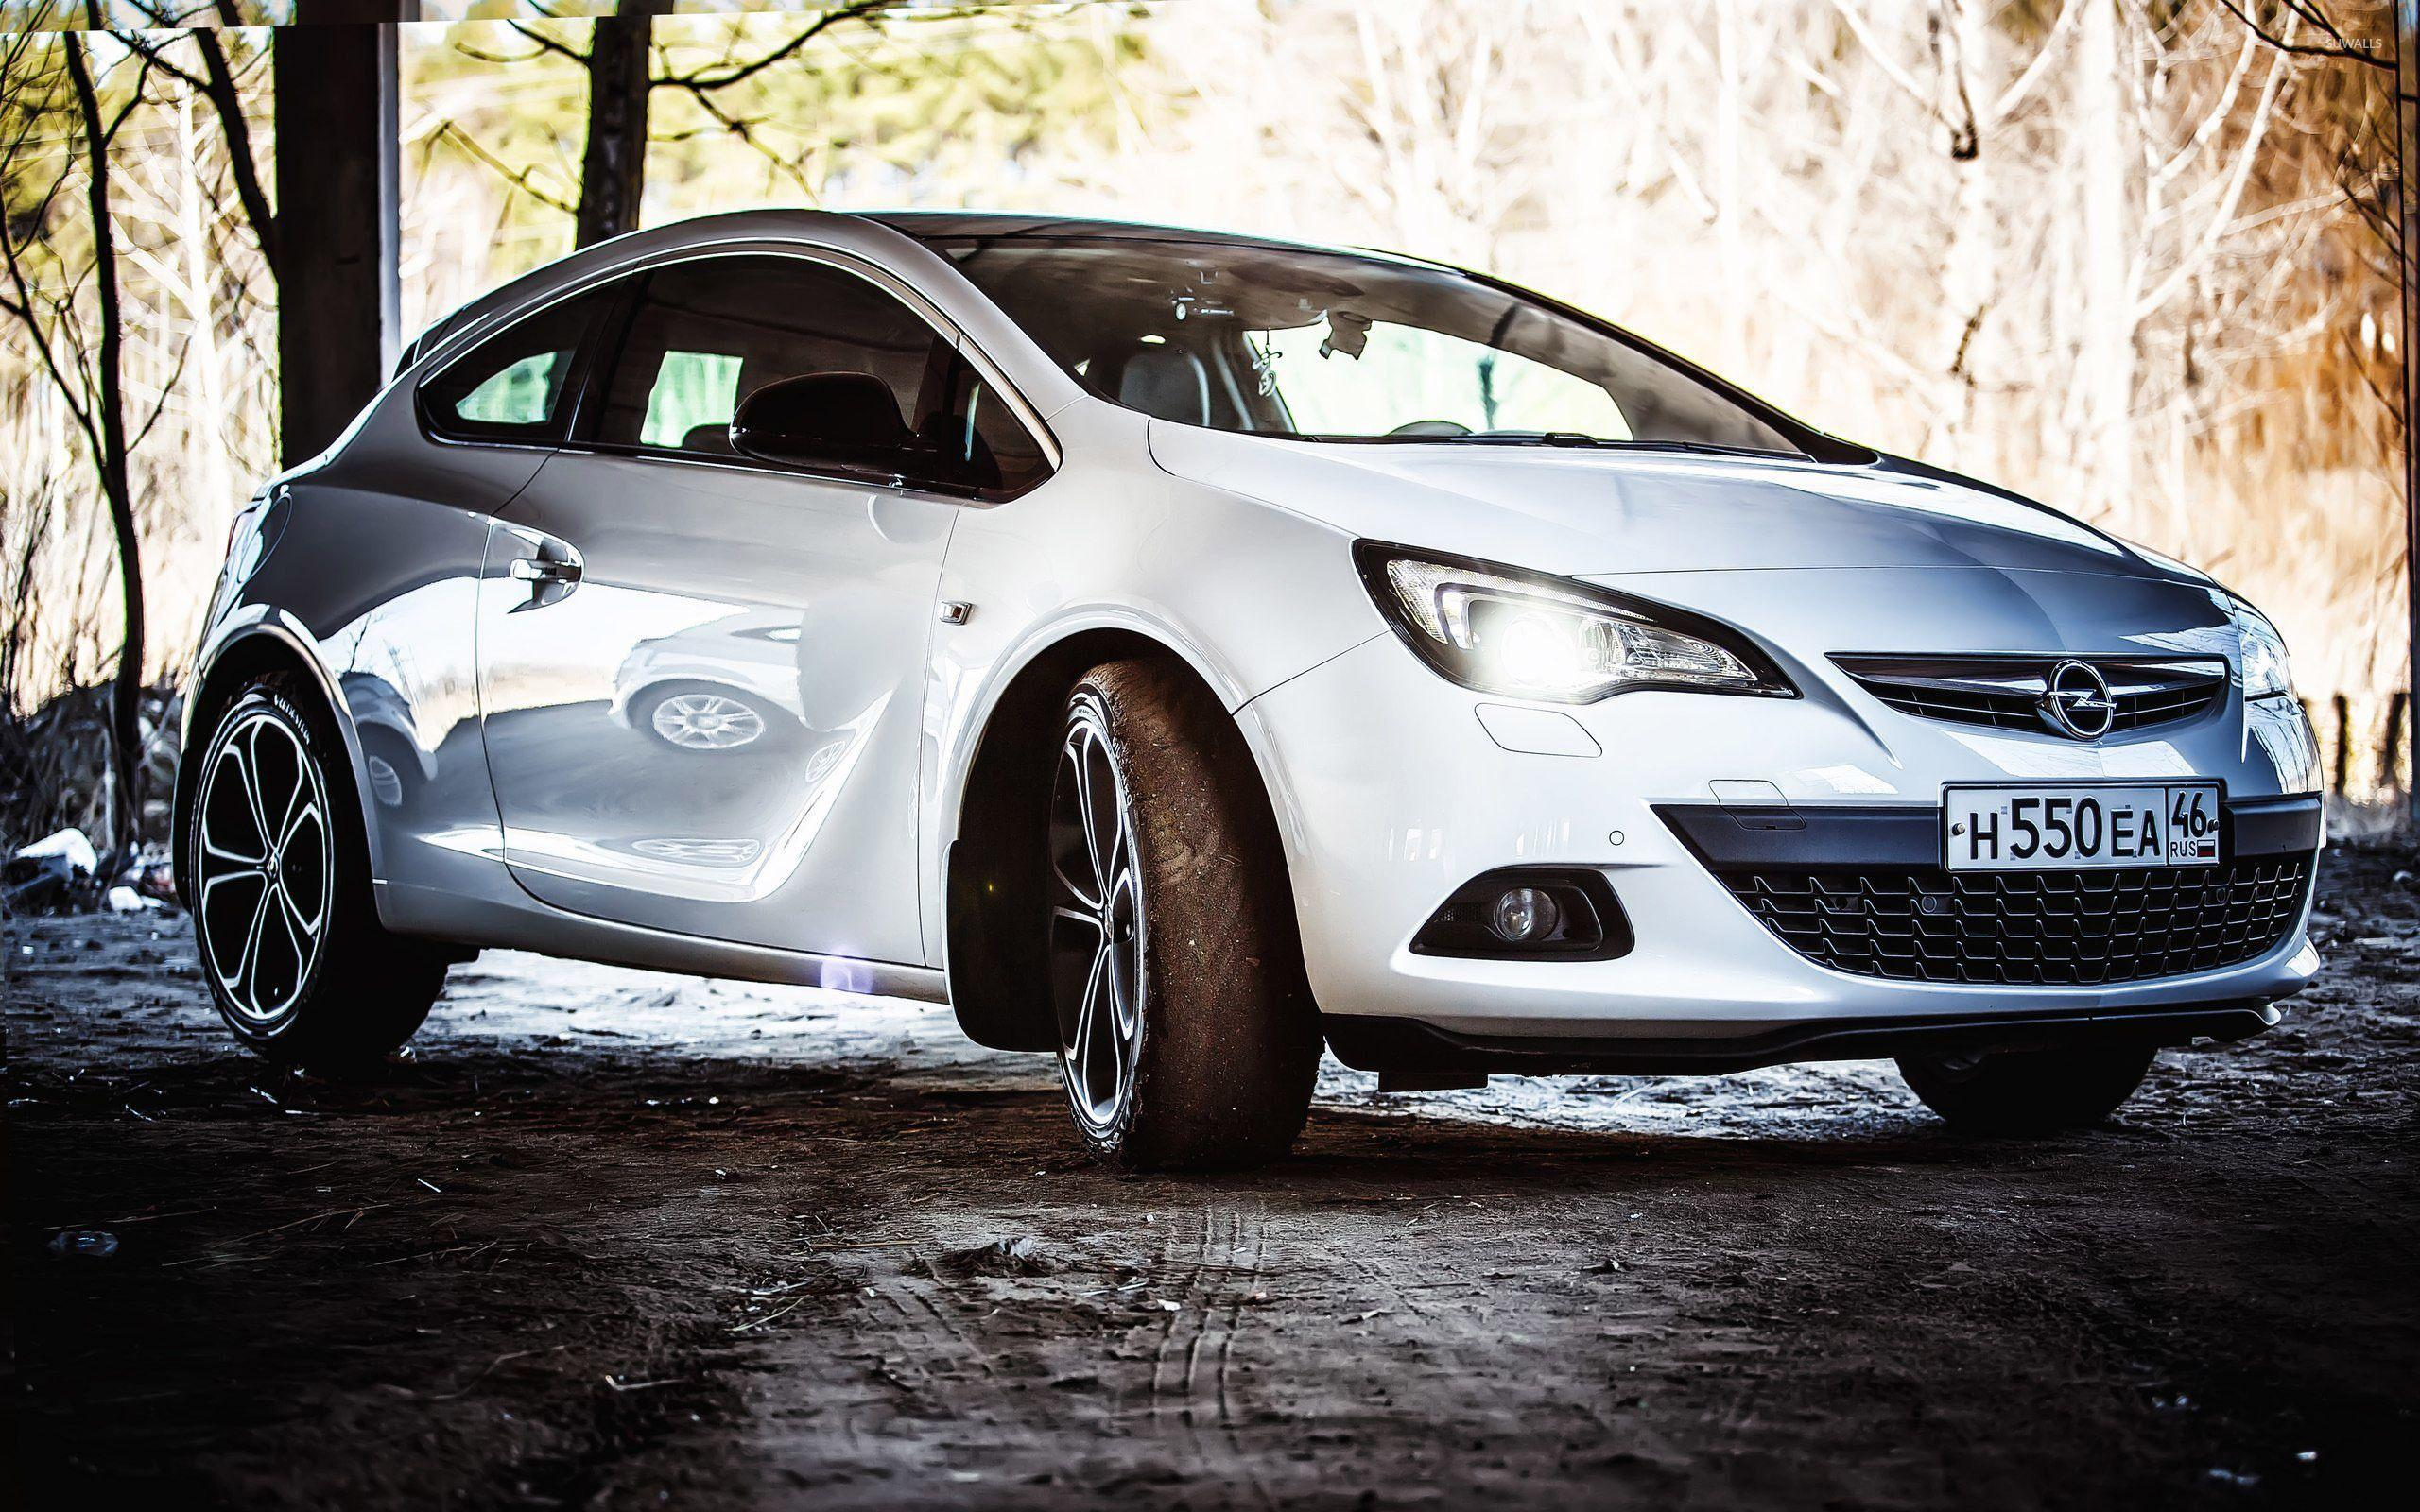 Opel Astra [4] wallpapers